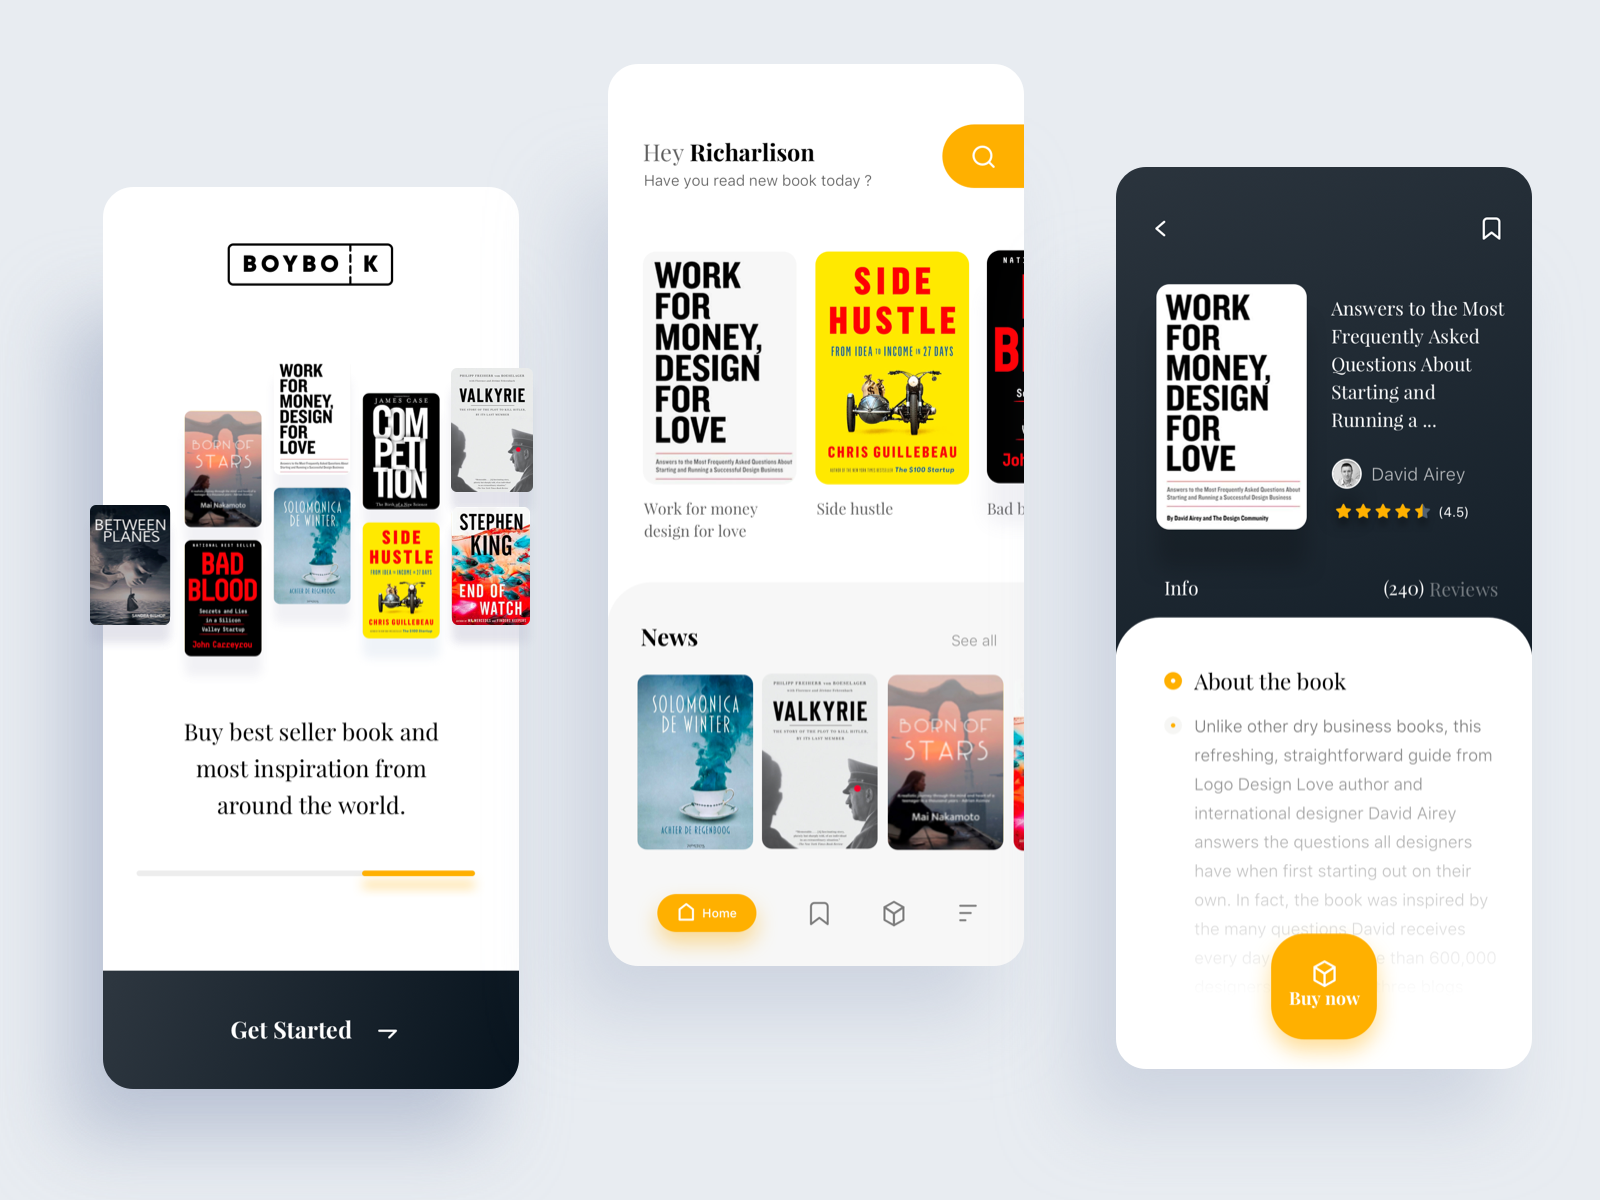 boybook apps for buy your favourite book